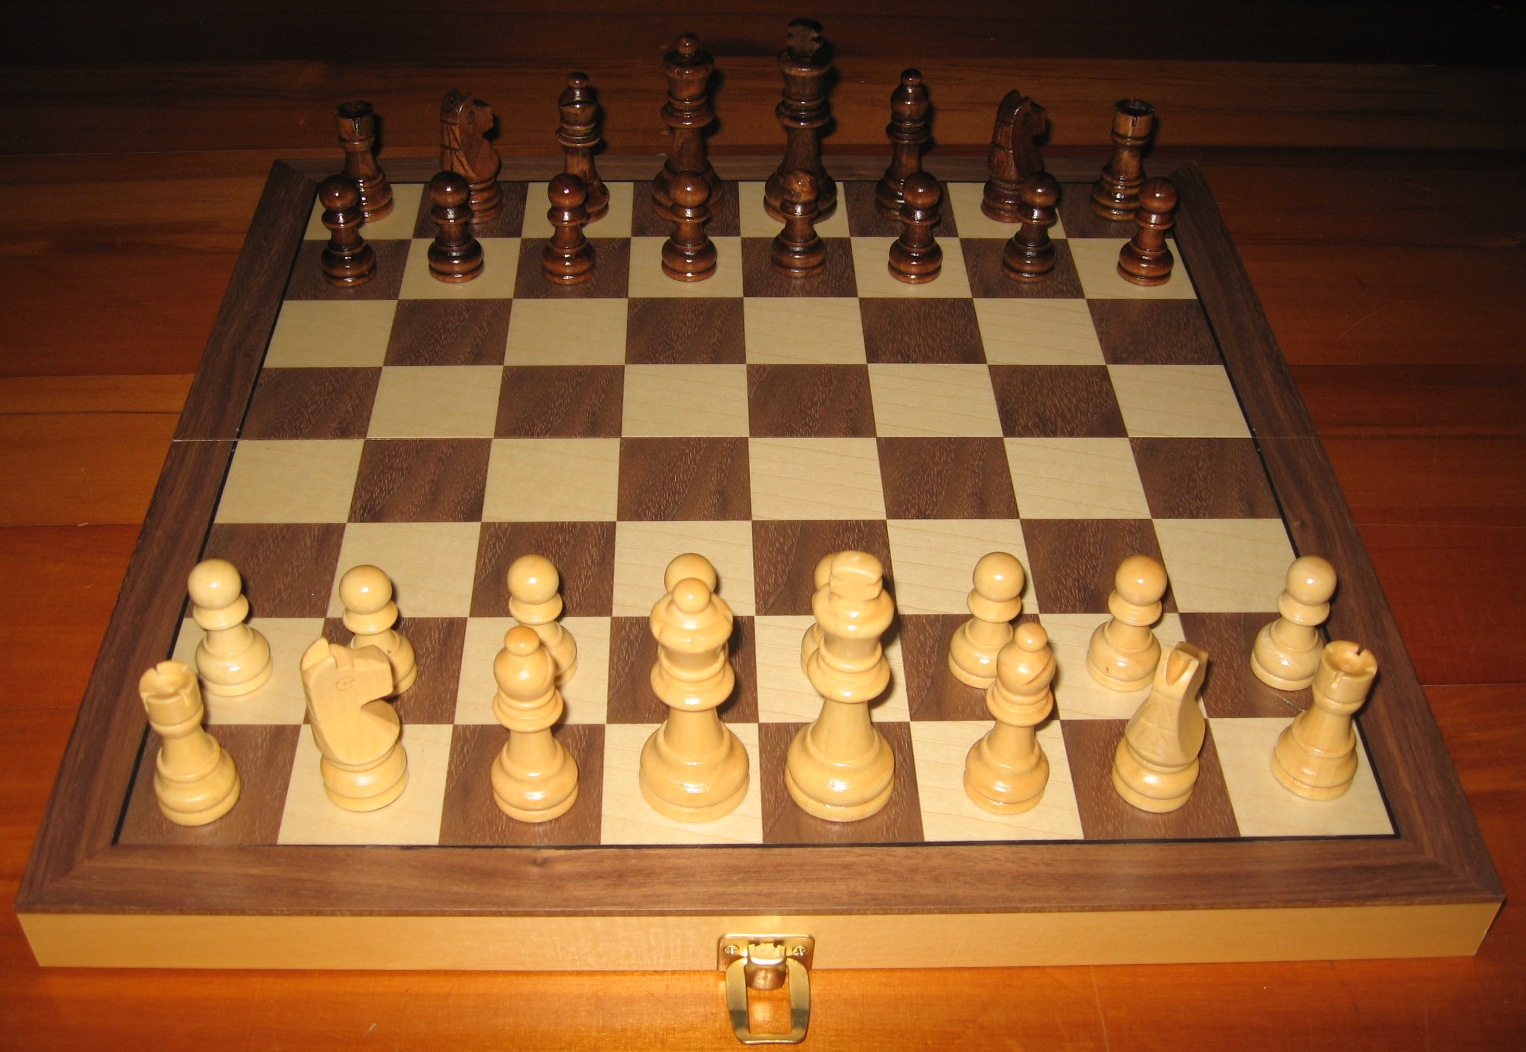 No 7162-15-I Chess Set and Folding Board. 78mm King